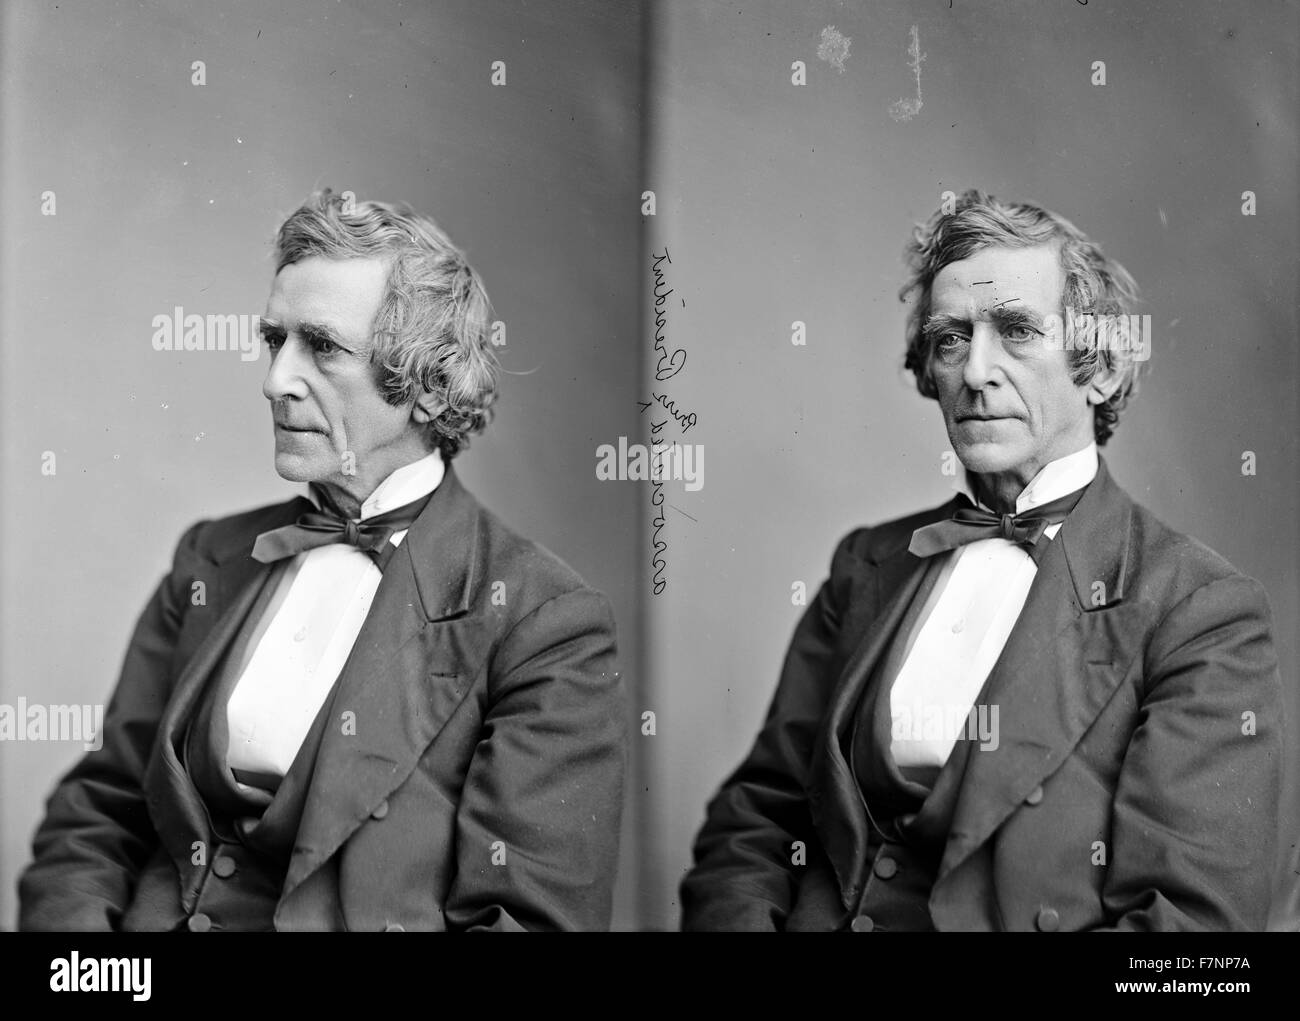 L.A. Gobright, President of Associated Press. [between 1865 and 1880] - Stock Image